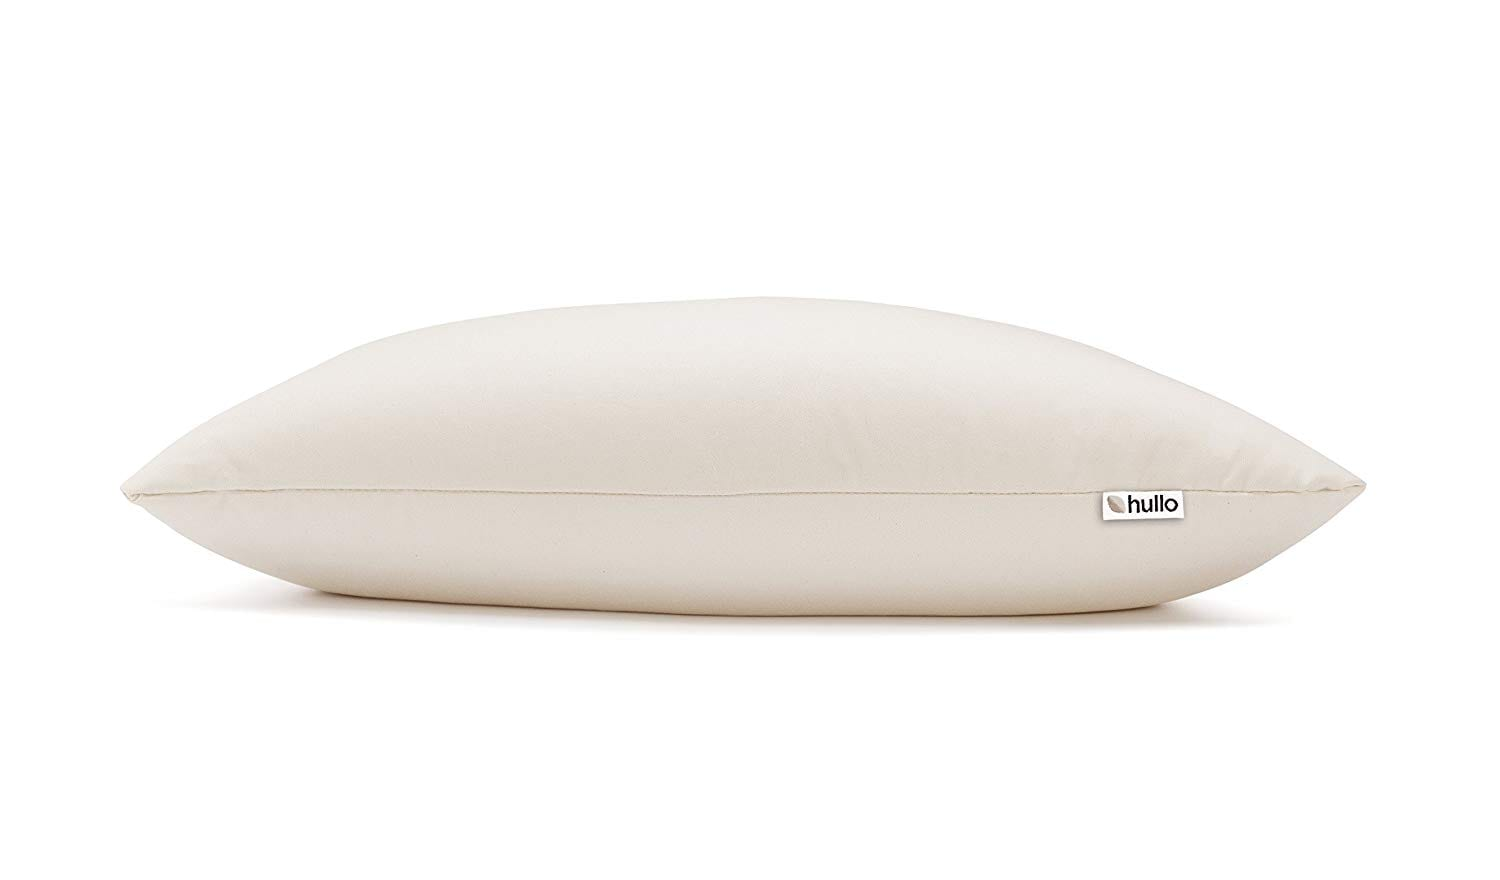 Hullo best pillow for neck pain review by www.dailysleep.org